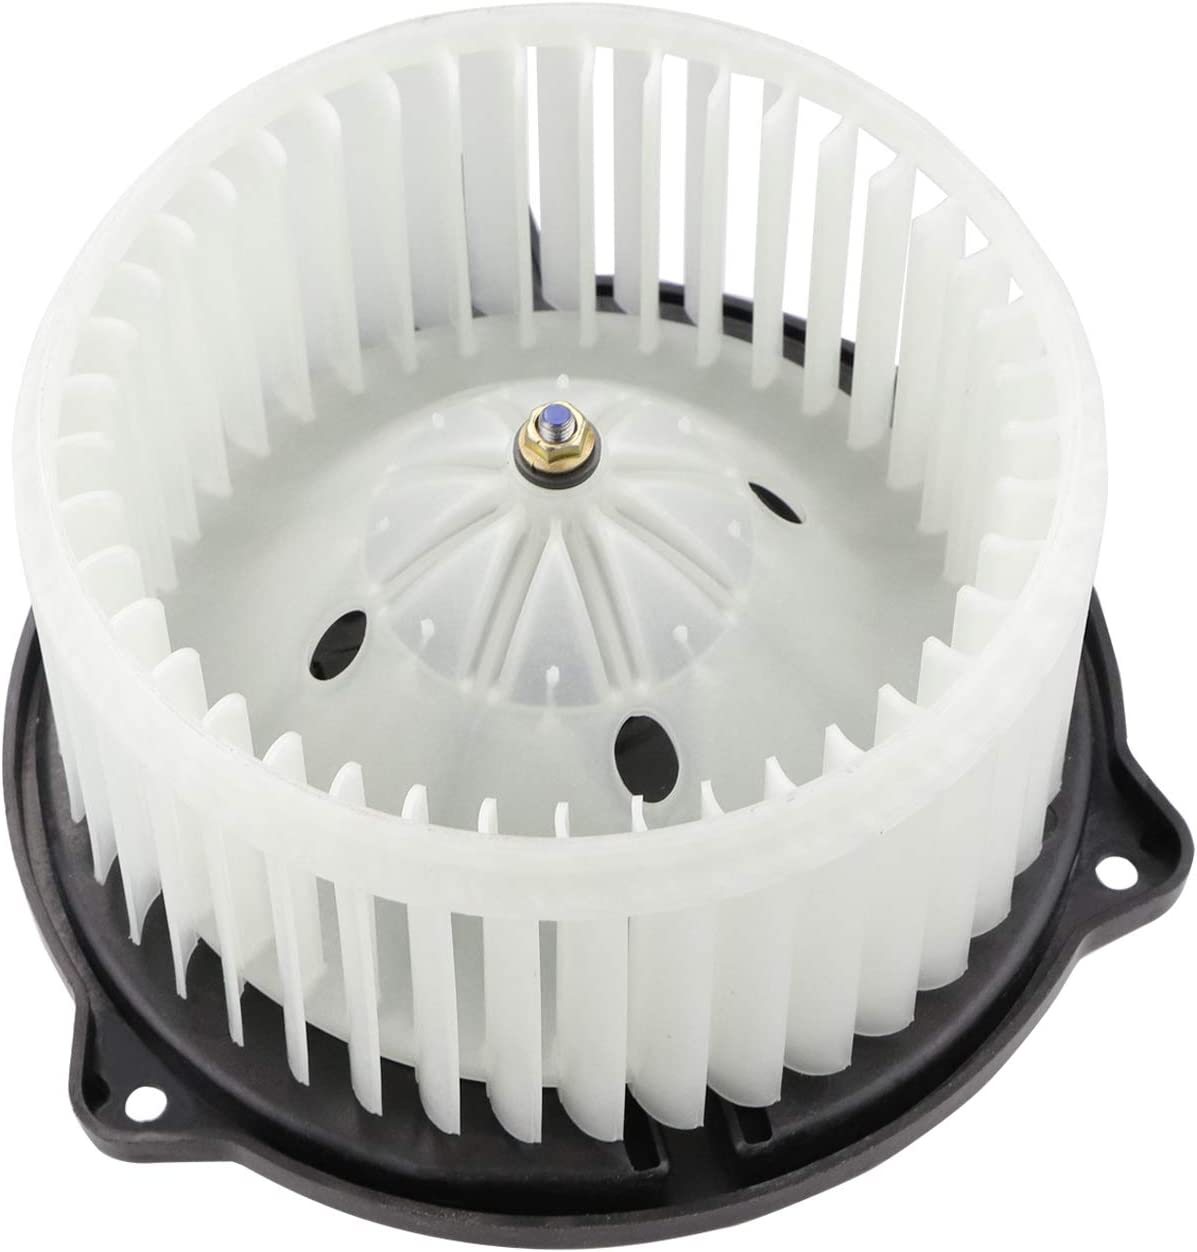 HVAC AC Blower Motor Fits 2002-2008 Dodge Ram 1500 2500 3500//2002-2004 Jeep Grand Cherokee Replaces 5096255AA //700012,5096256AA,5012701AB,615-00649,615-00635,615-0629 Replacement Heater Motor